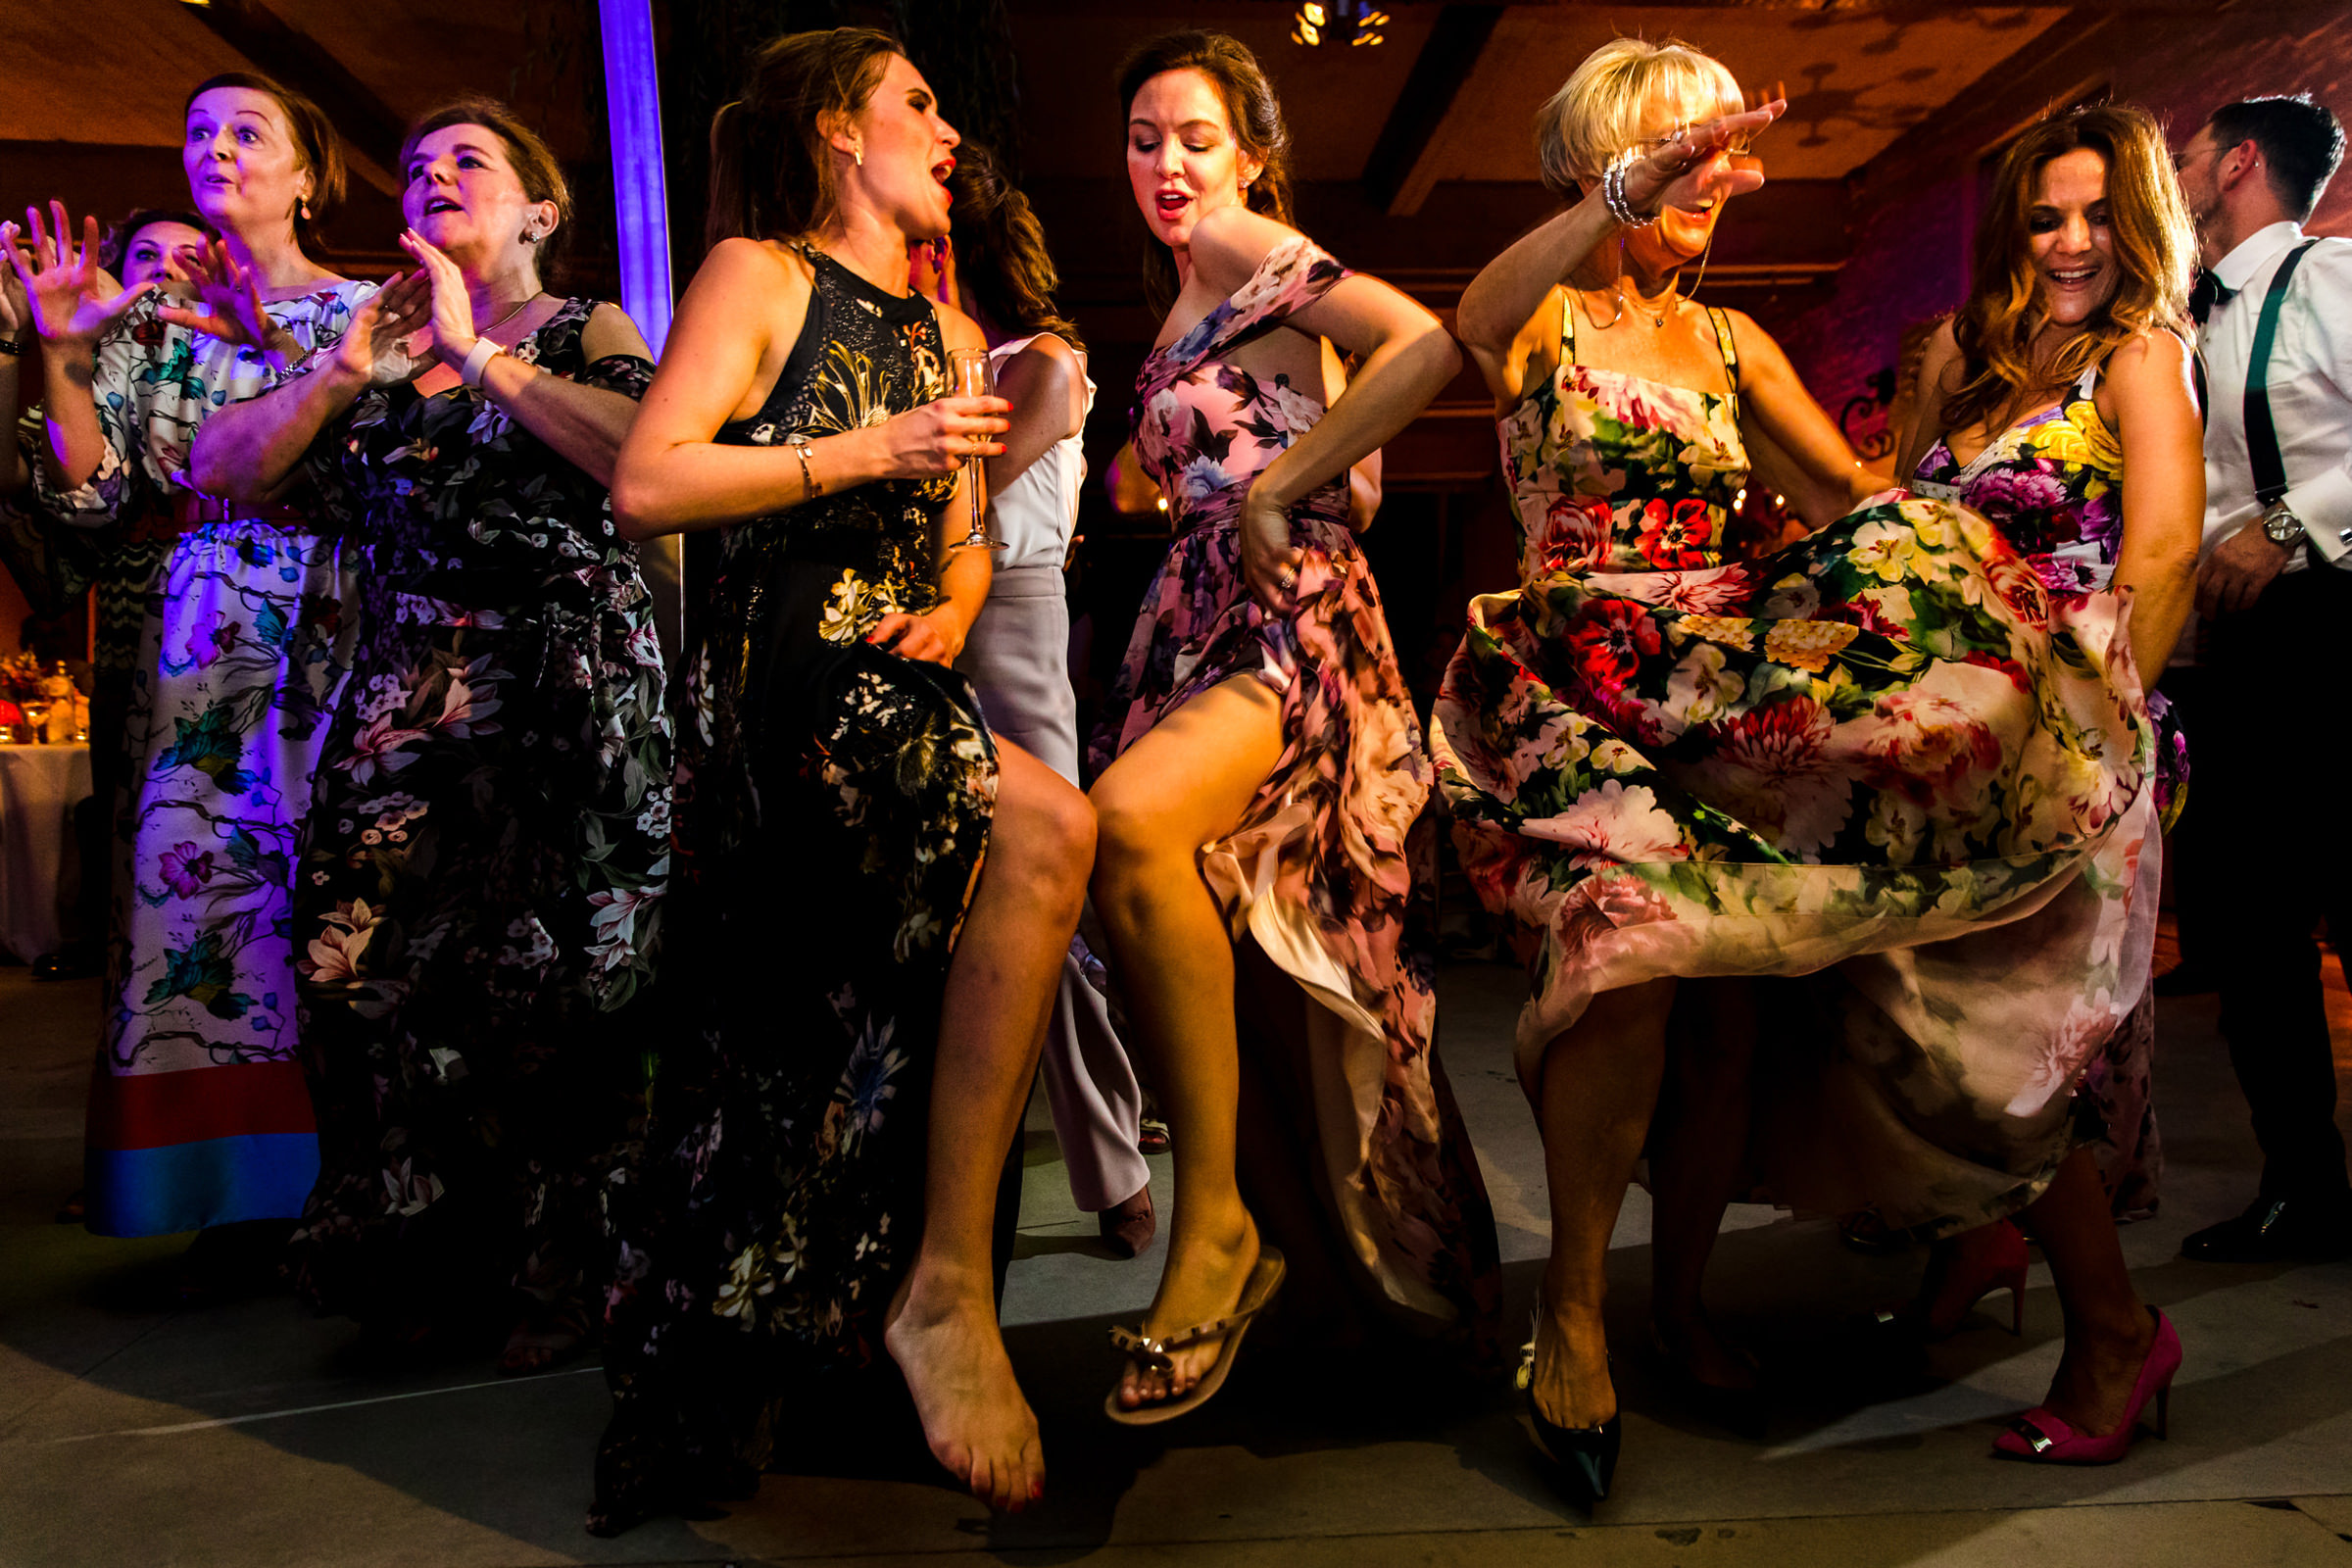 Bridesmaids in colorful flowy dresses dancing, photo by Philippe Swiggers